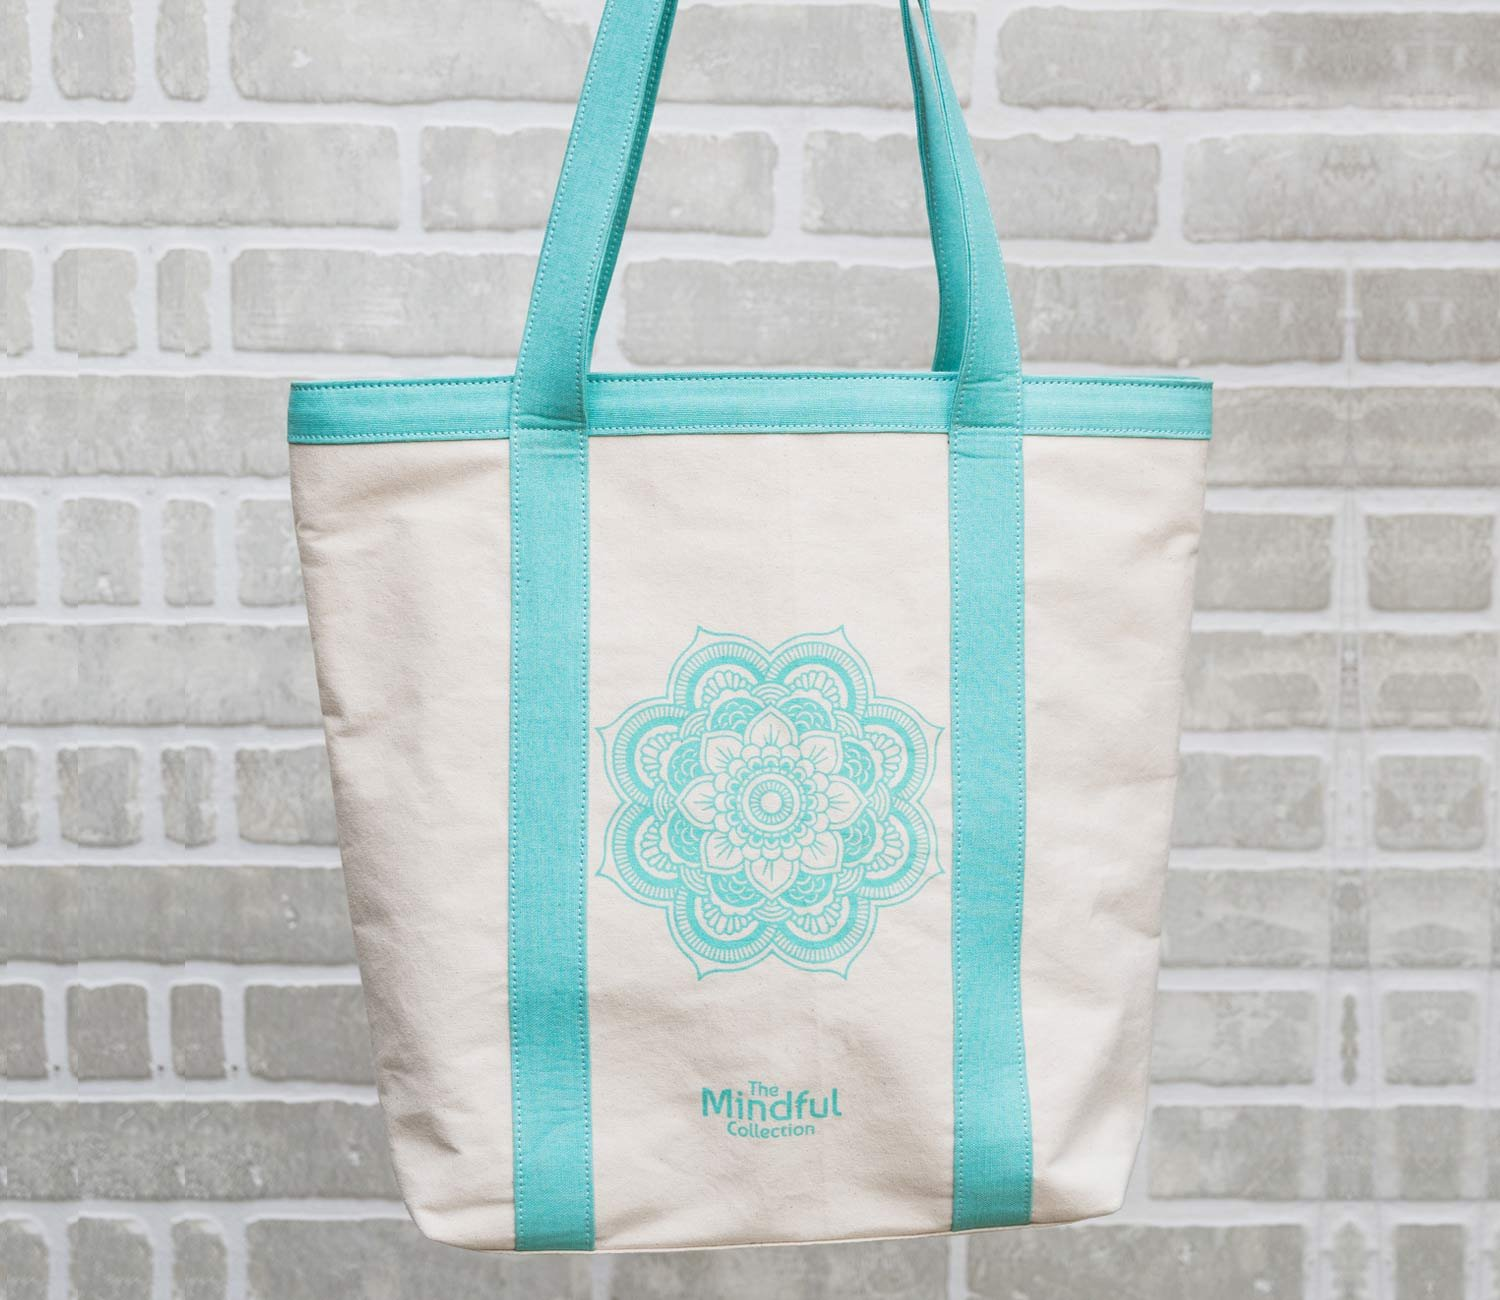 Mindful Collection Bags by  Knitters Pride